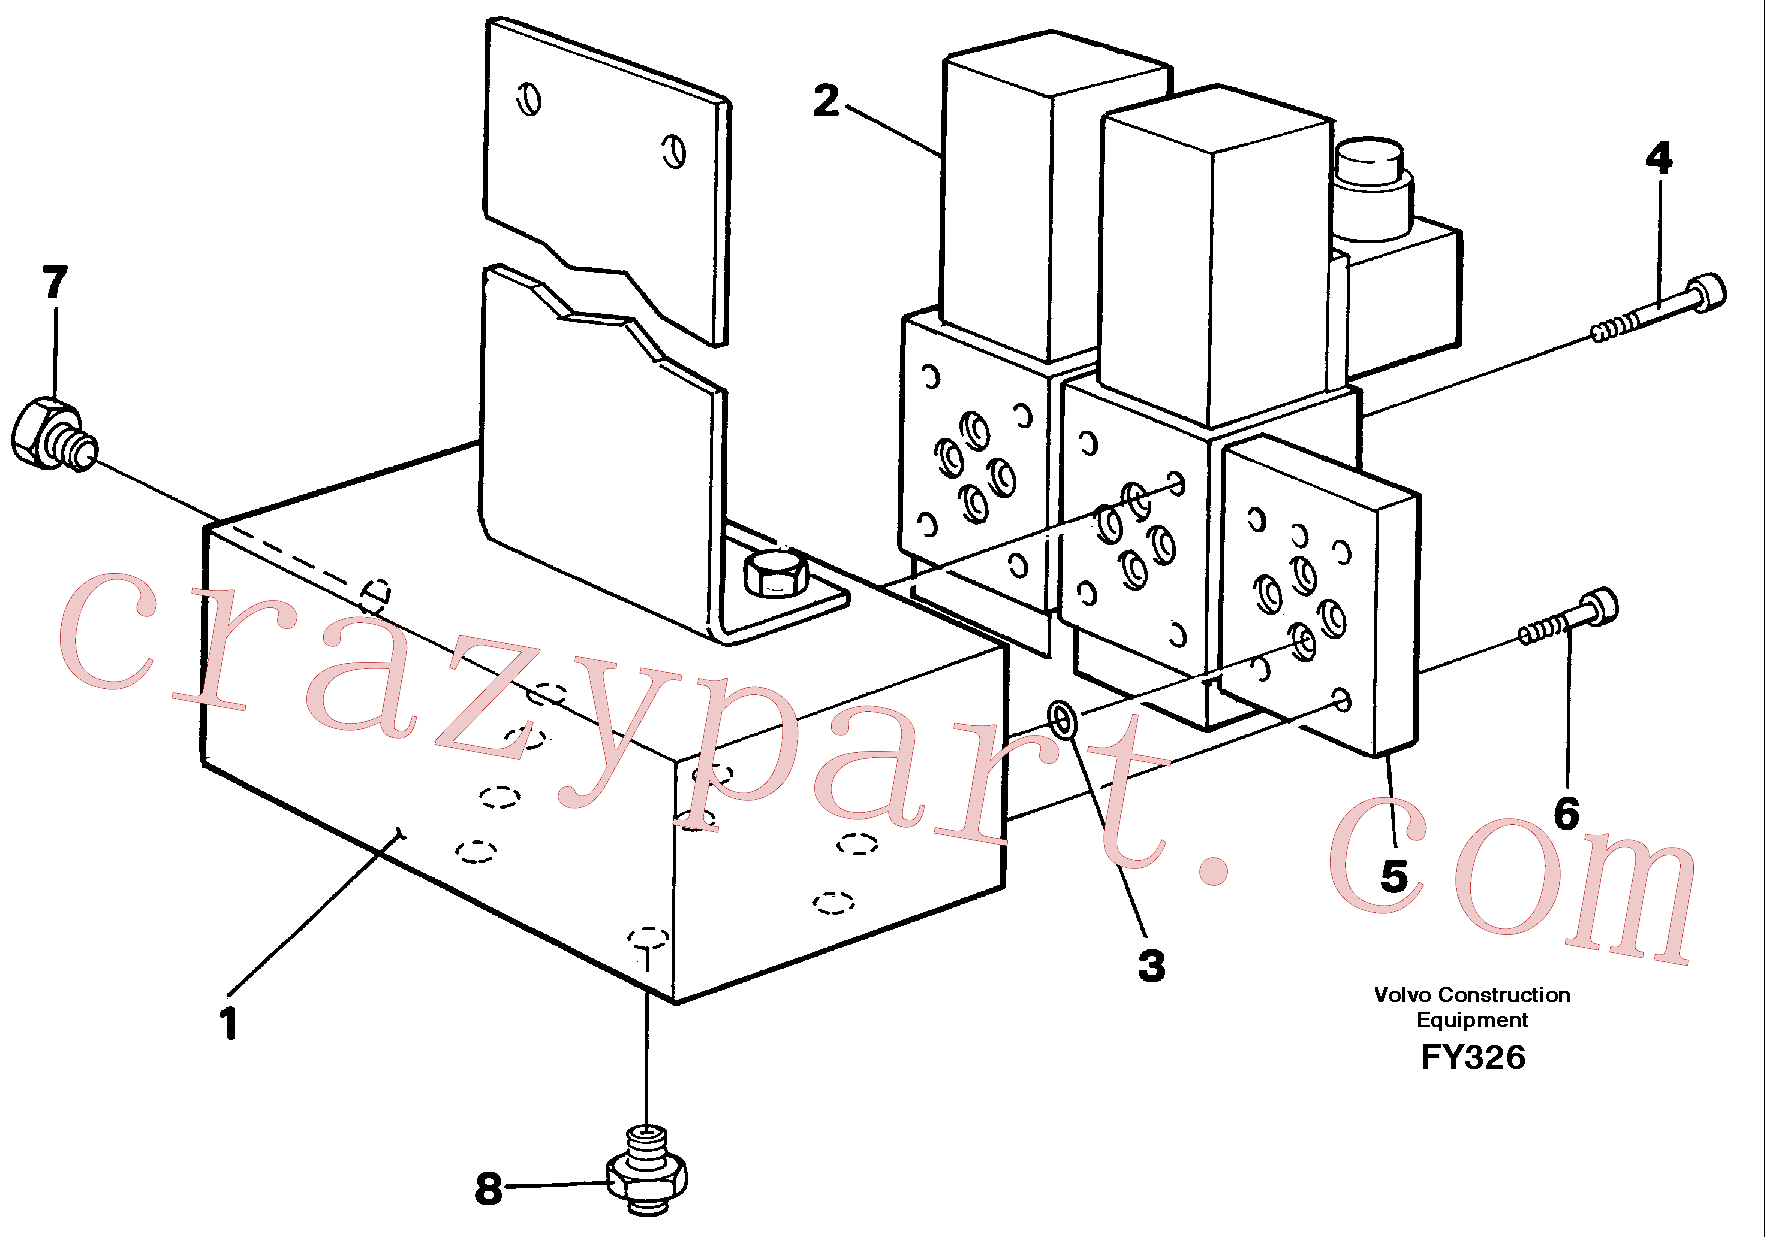 VOE14265156 for Volvo Solenoid valves(FY326 assembly)